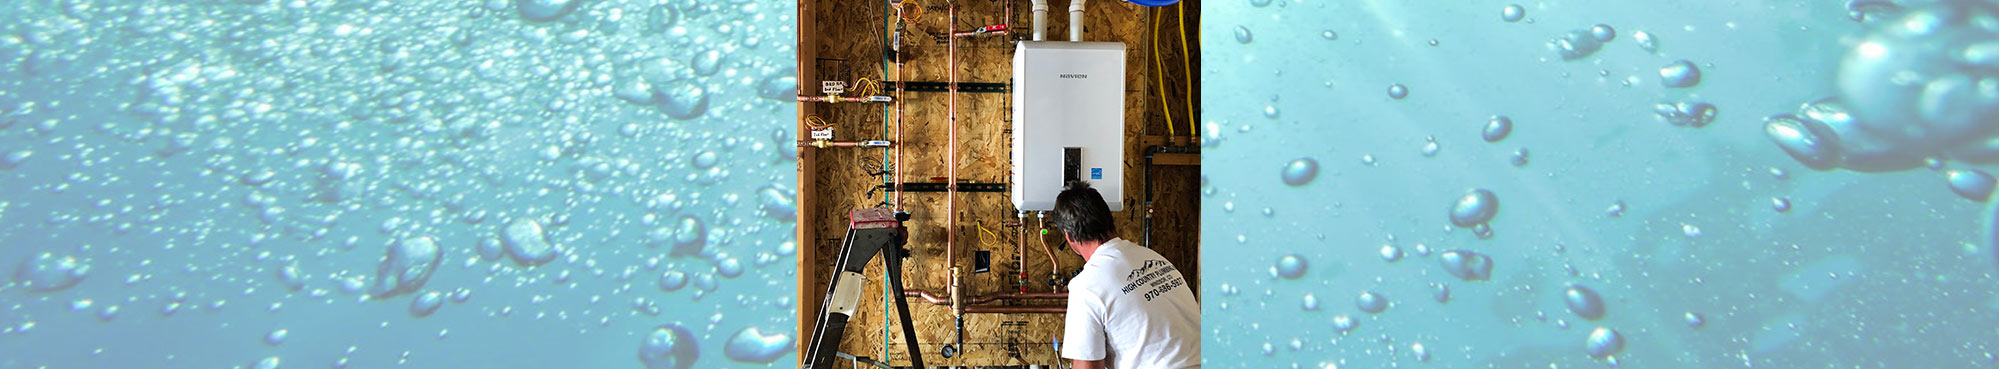 tankless water heater hero image